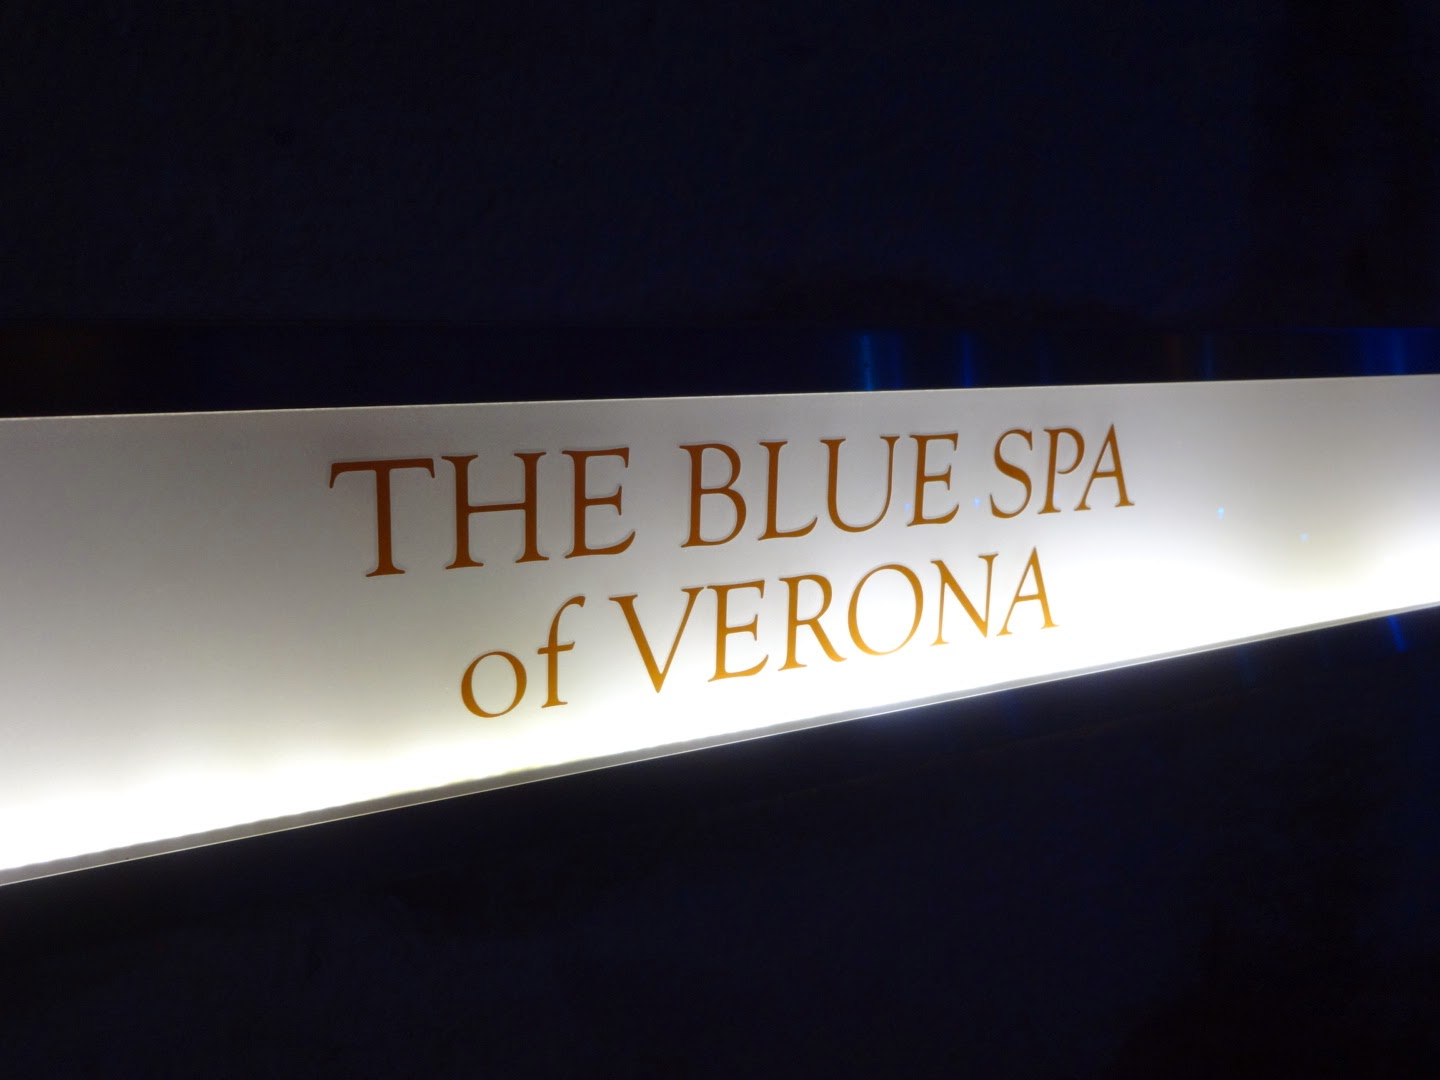 SPA a verona, SPA Darphin, the blue spa of verona, the gentleman of verona, hotel verona, hotel con spa e centro benessere a verona